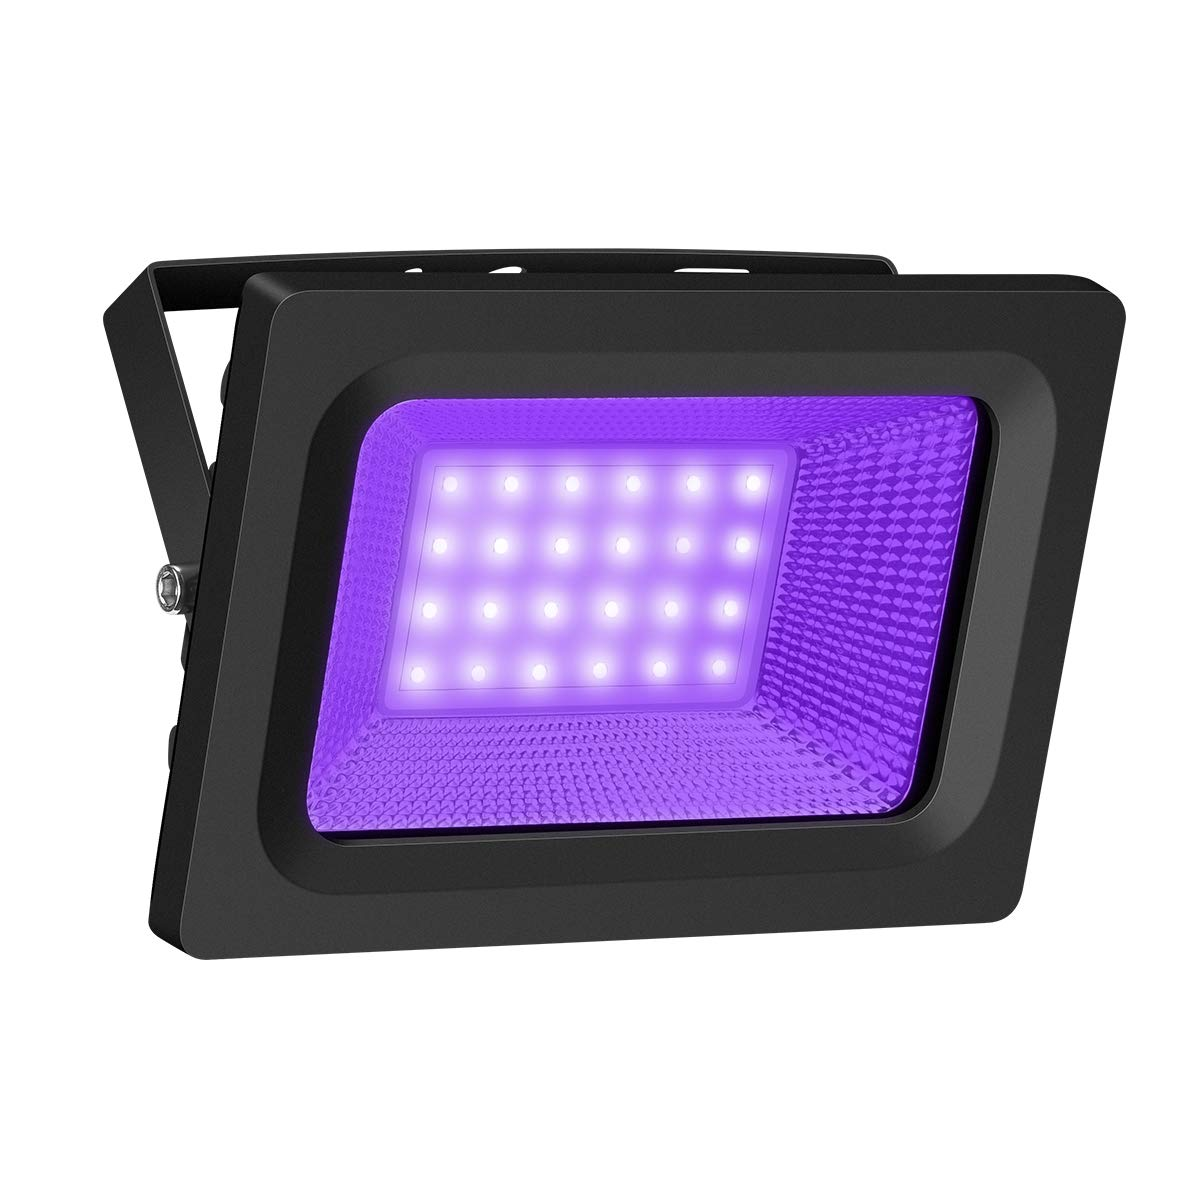 UV Black Light, Gianor 20W UV LED Flood Light Bulb Outdoor, IP66 Waterproof Disco Blacklights for Fishing/Aquarium/Curing, Body Paint, Fluorescent Poster, Neon Glow, Stage Lighting